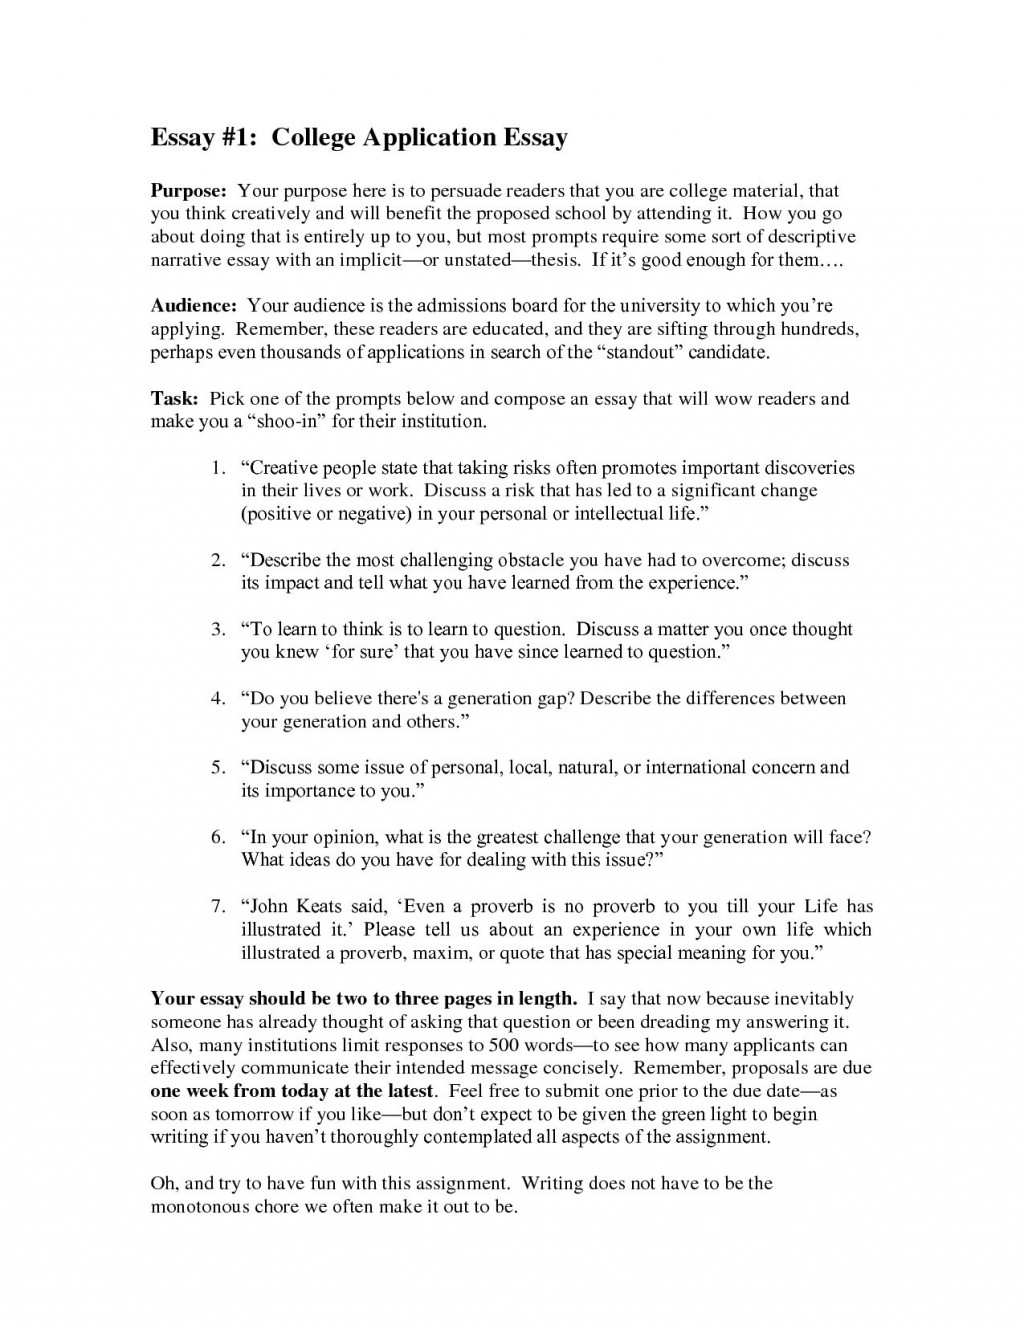 015 Interesting Topics For Research Paper Rare College Students In The Philippines History Technology Large